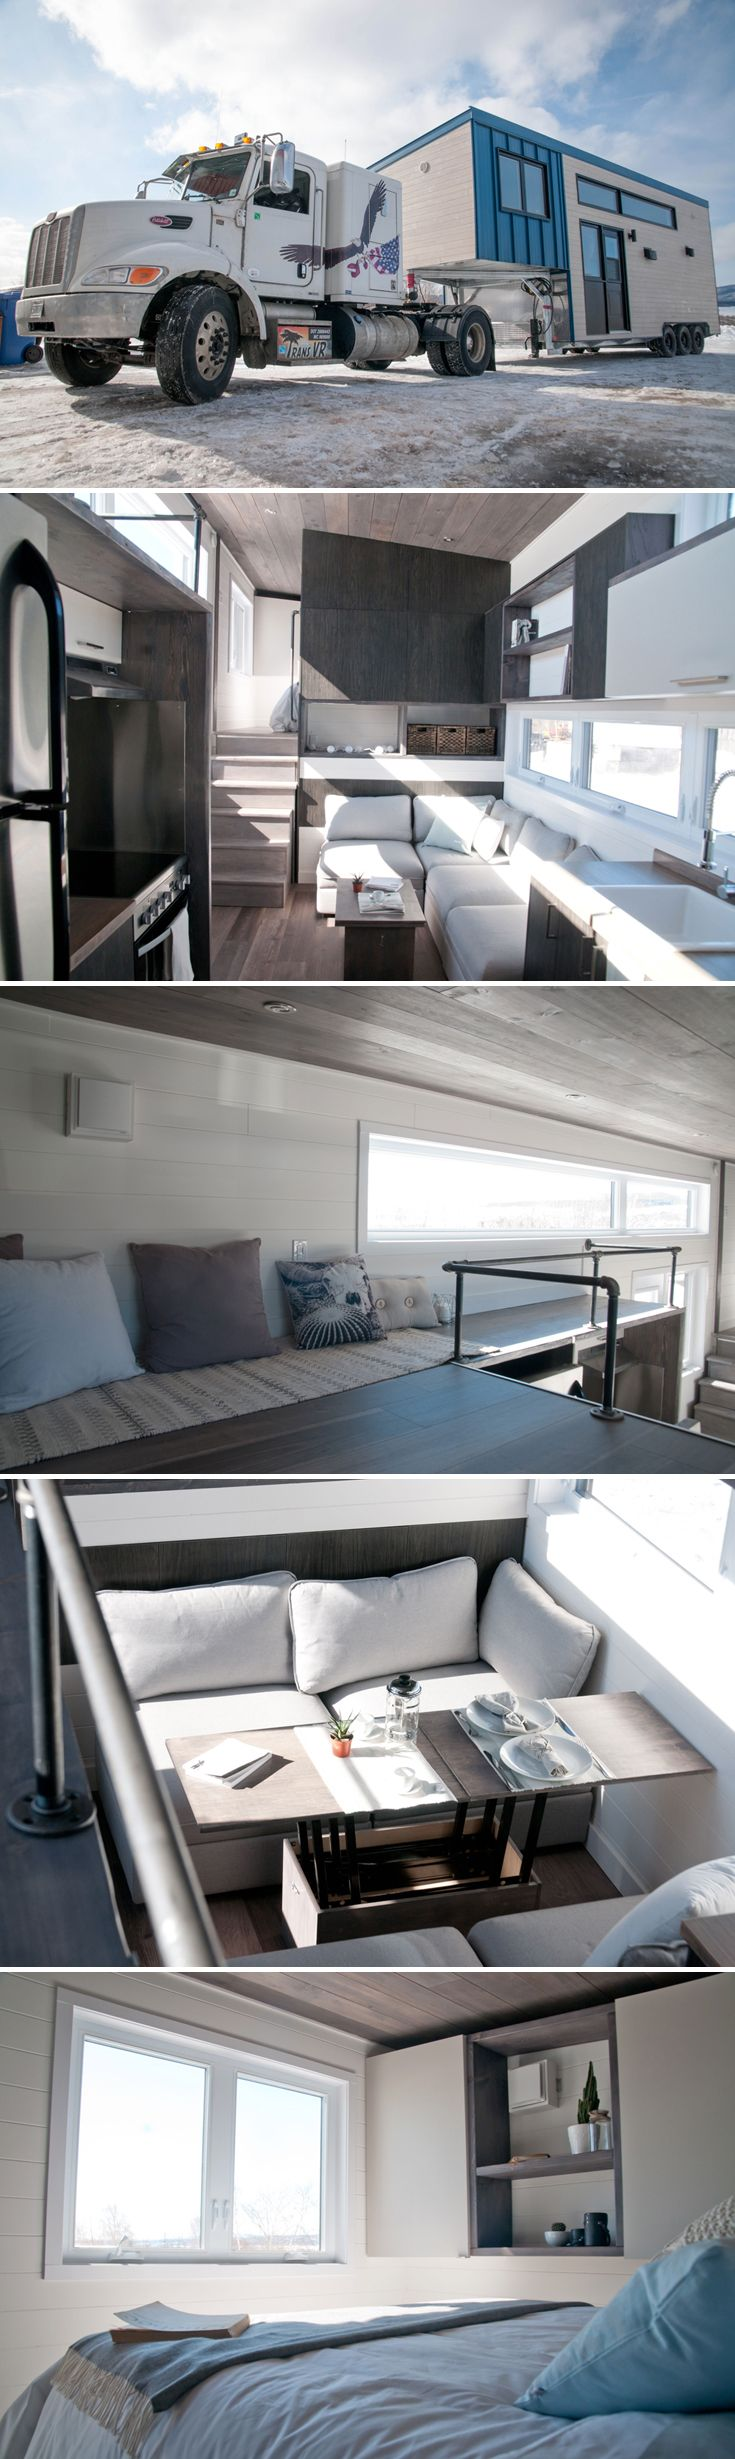 The Sakura is a 380-square-foot gooseneck tiny house built by Minimaliste in Quebec, Canada. Comes with an 80-square-foot red cedar rooftop terrace!